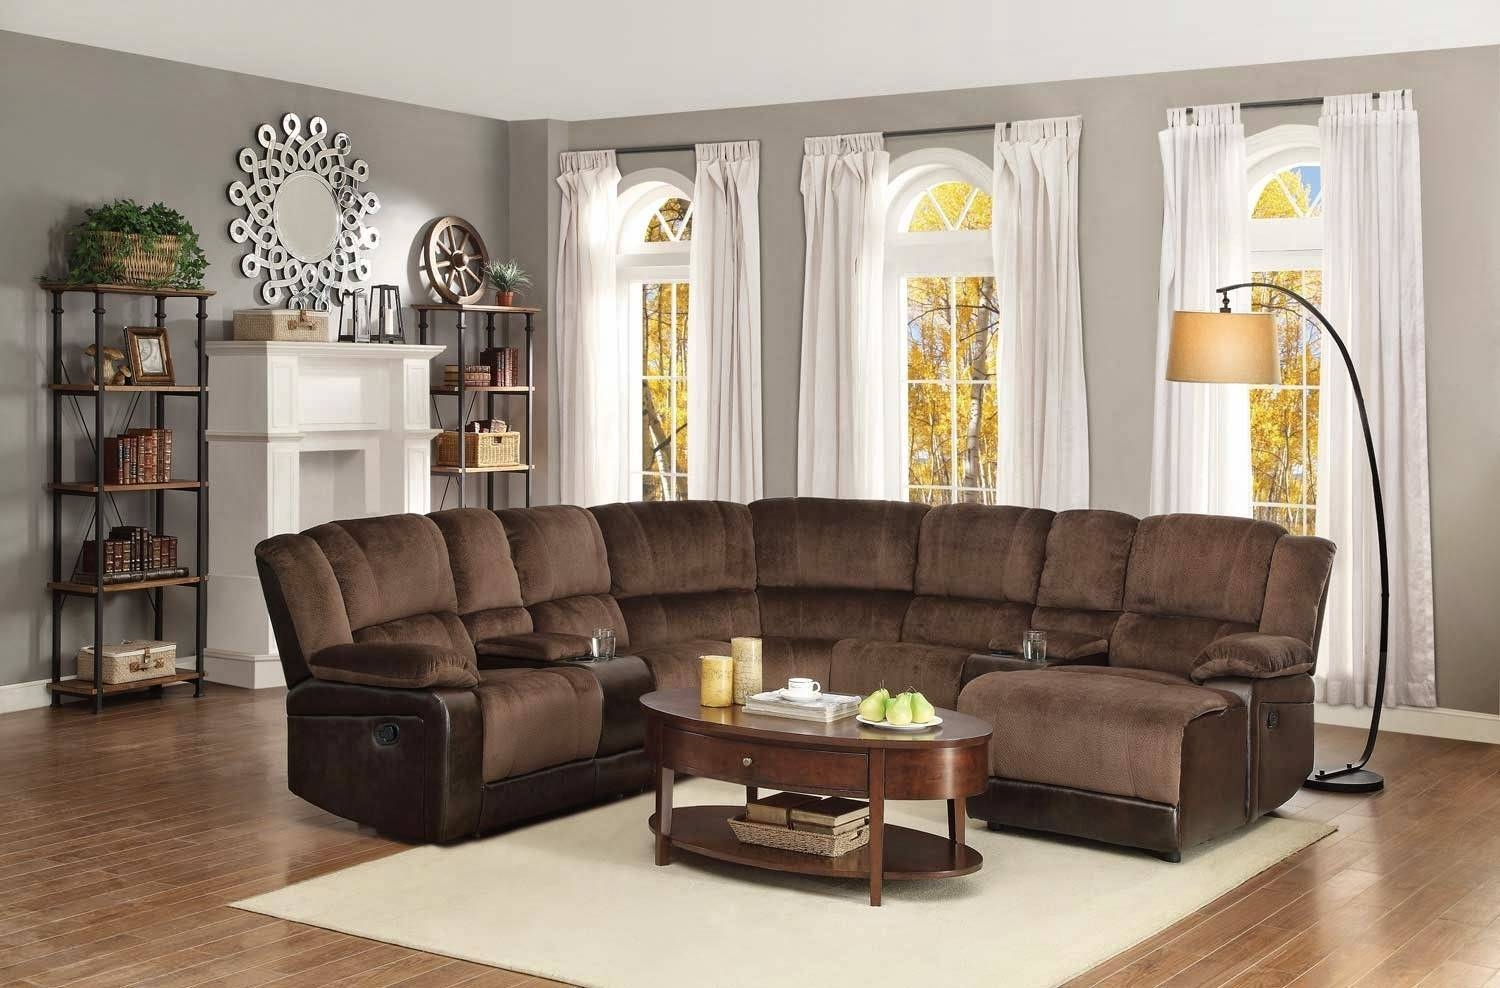 Furniture: Create Your Living Room With Cool Sectional Recliner intended for Curved Sectional Sofa With Recliner (Image 11 of 30)